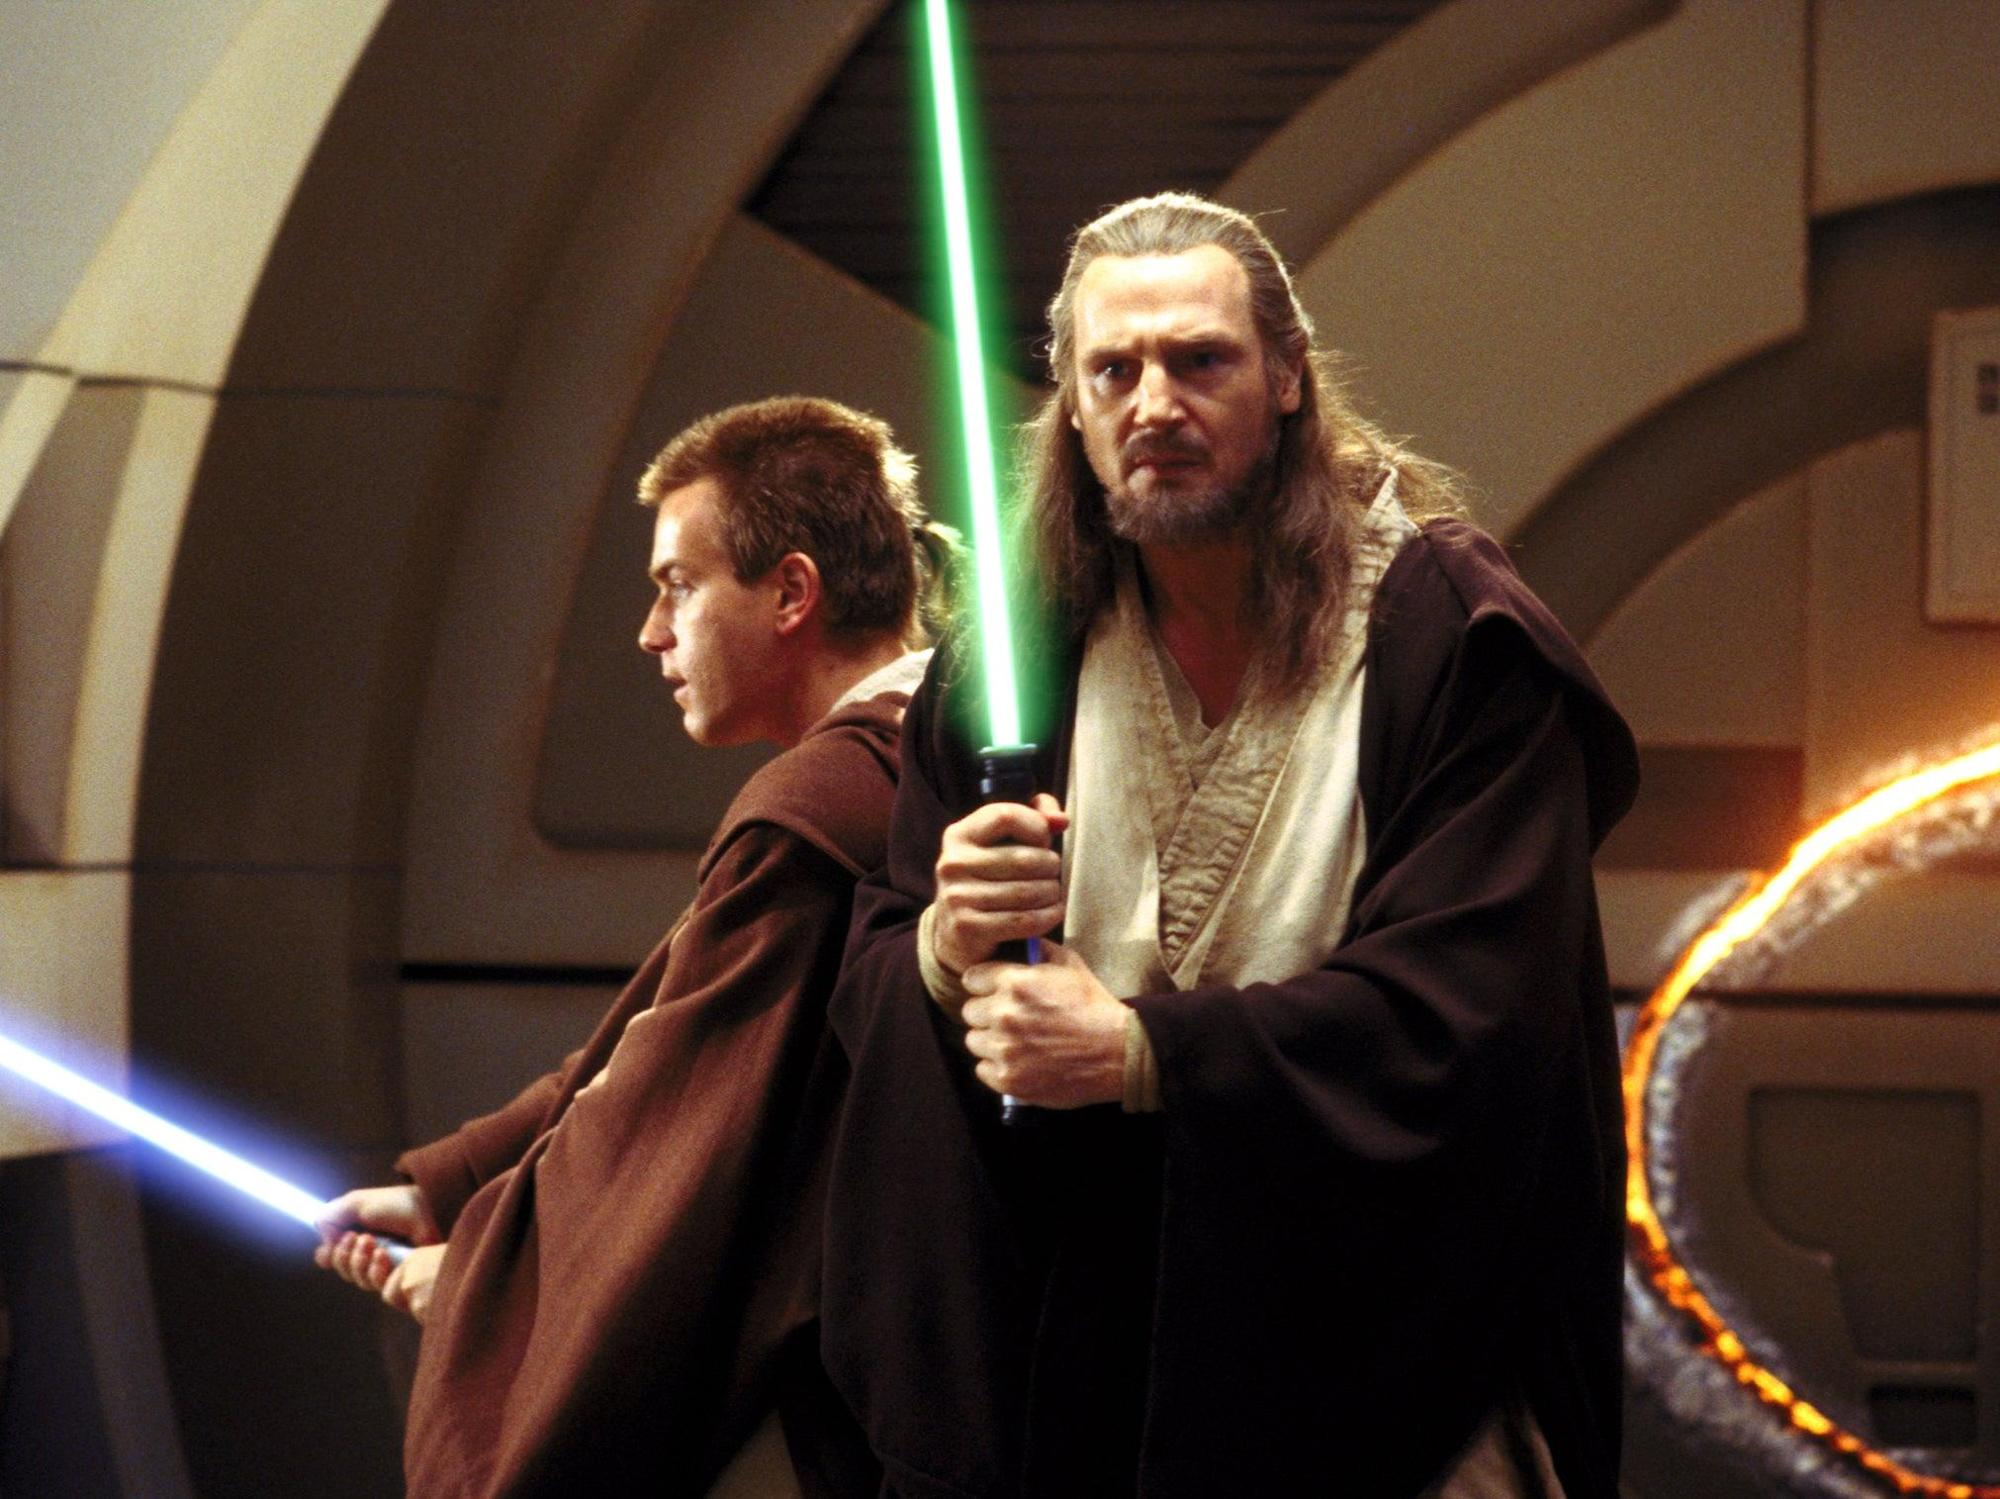 Star Wars: Liam Neeson says he would be 'up for' return to franchise in Obi-Wan Kenobi Disney+ series